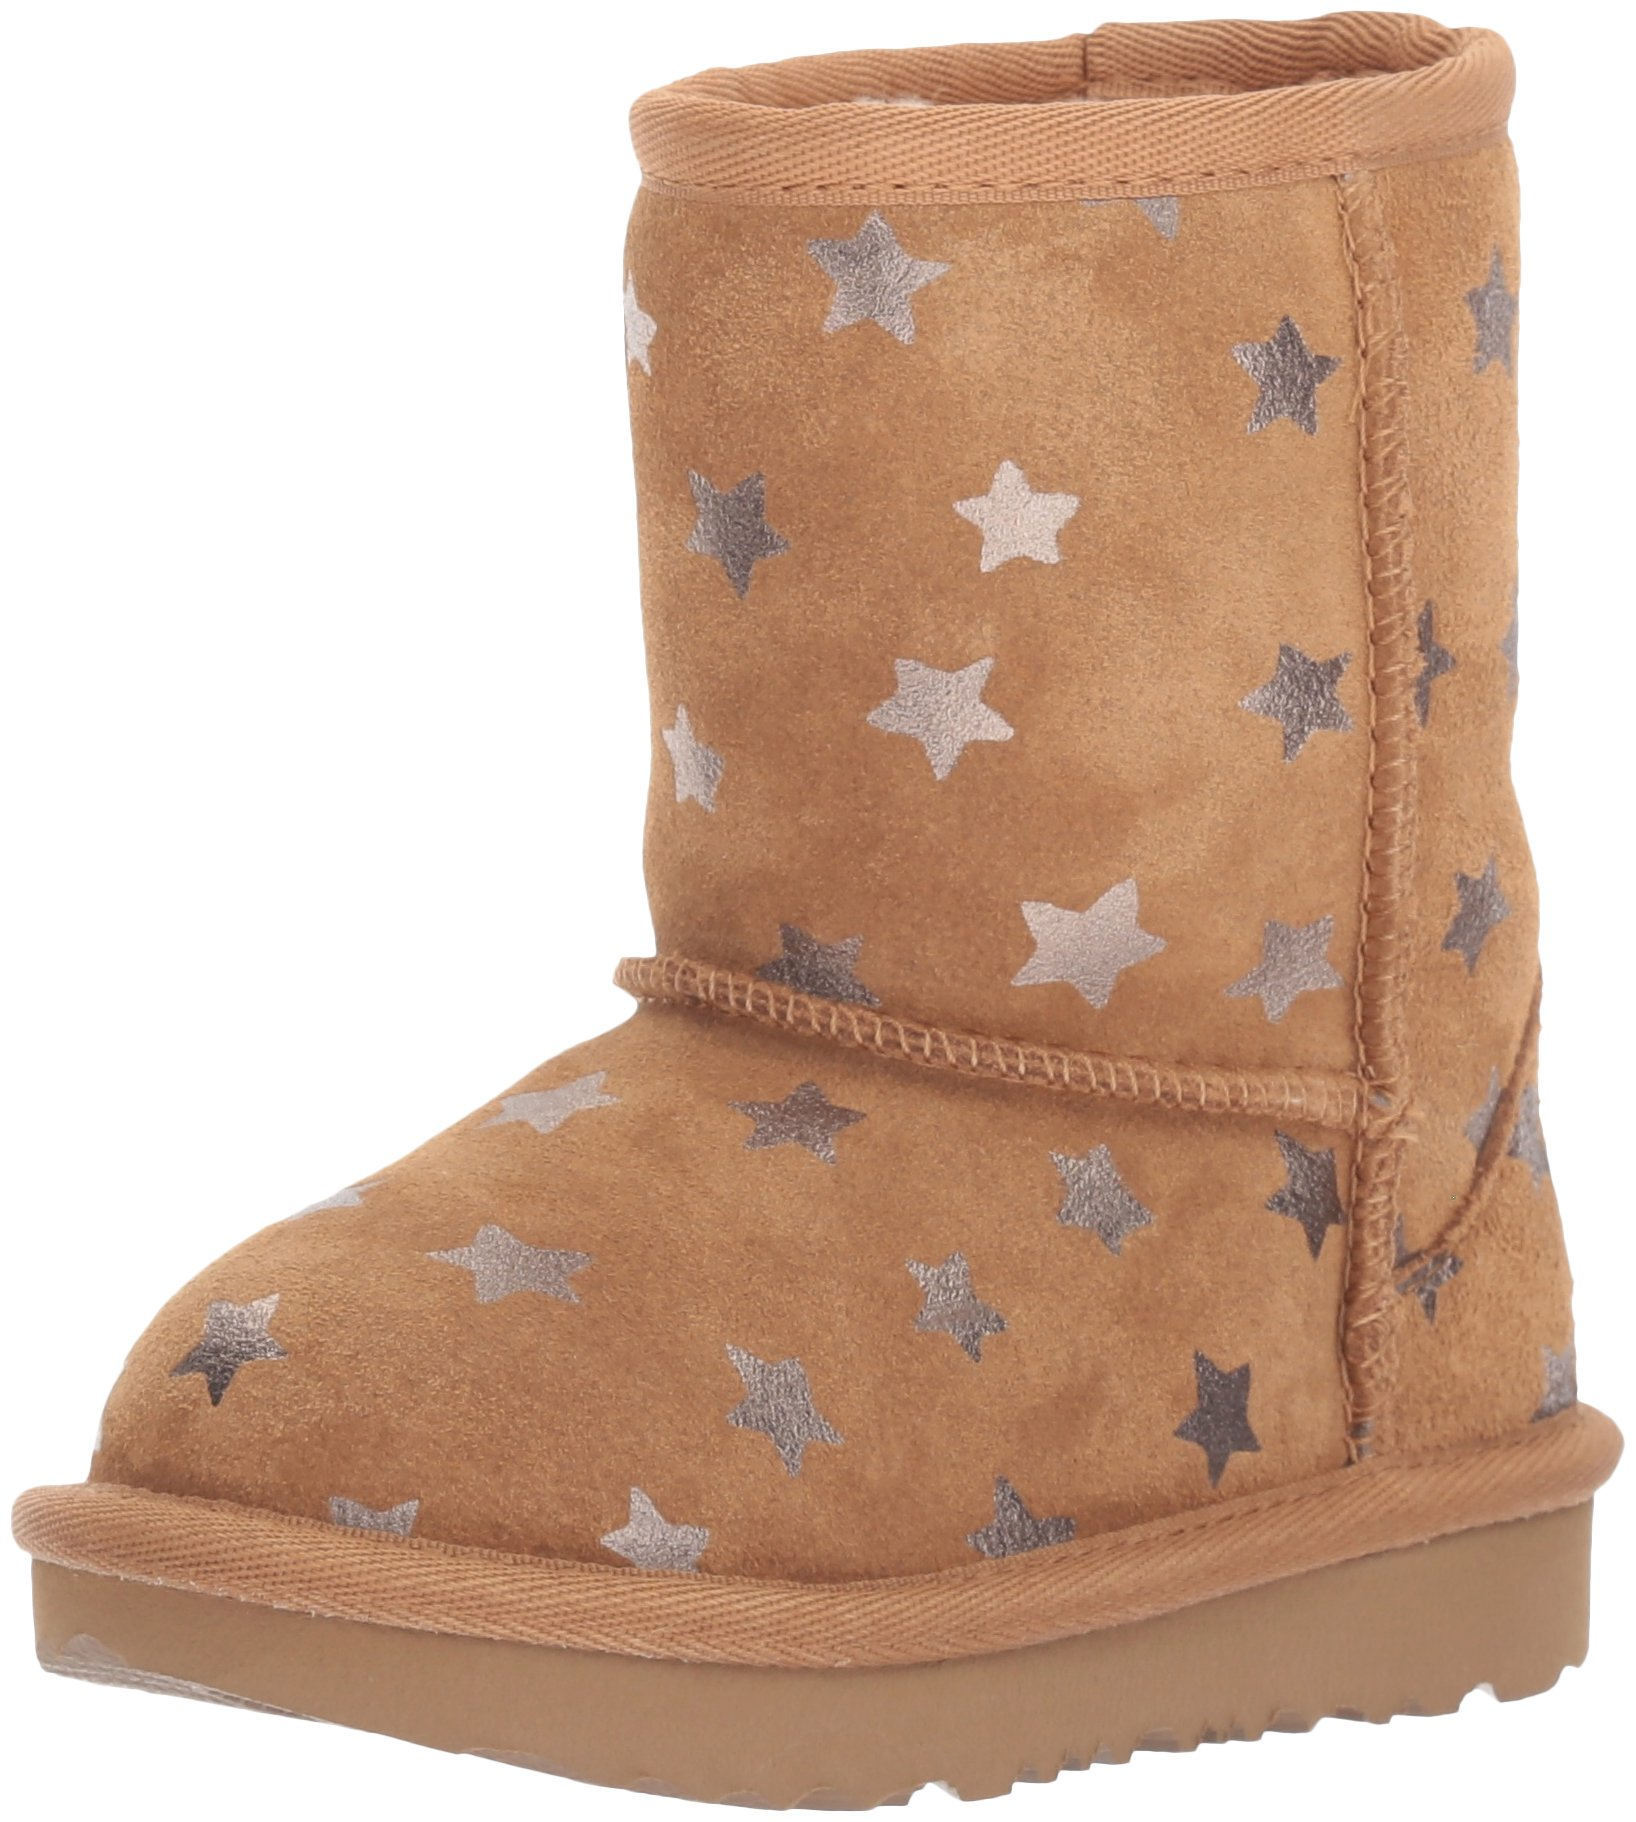 UGG Girls T Classic Short II Stars Pull-On Boot, Chestnut, 7 M US Toddler by UGG (Image #1)